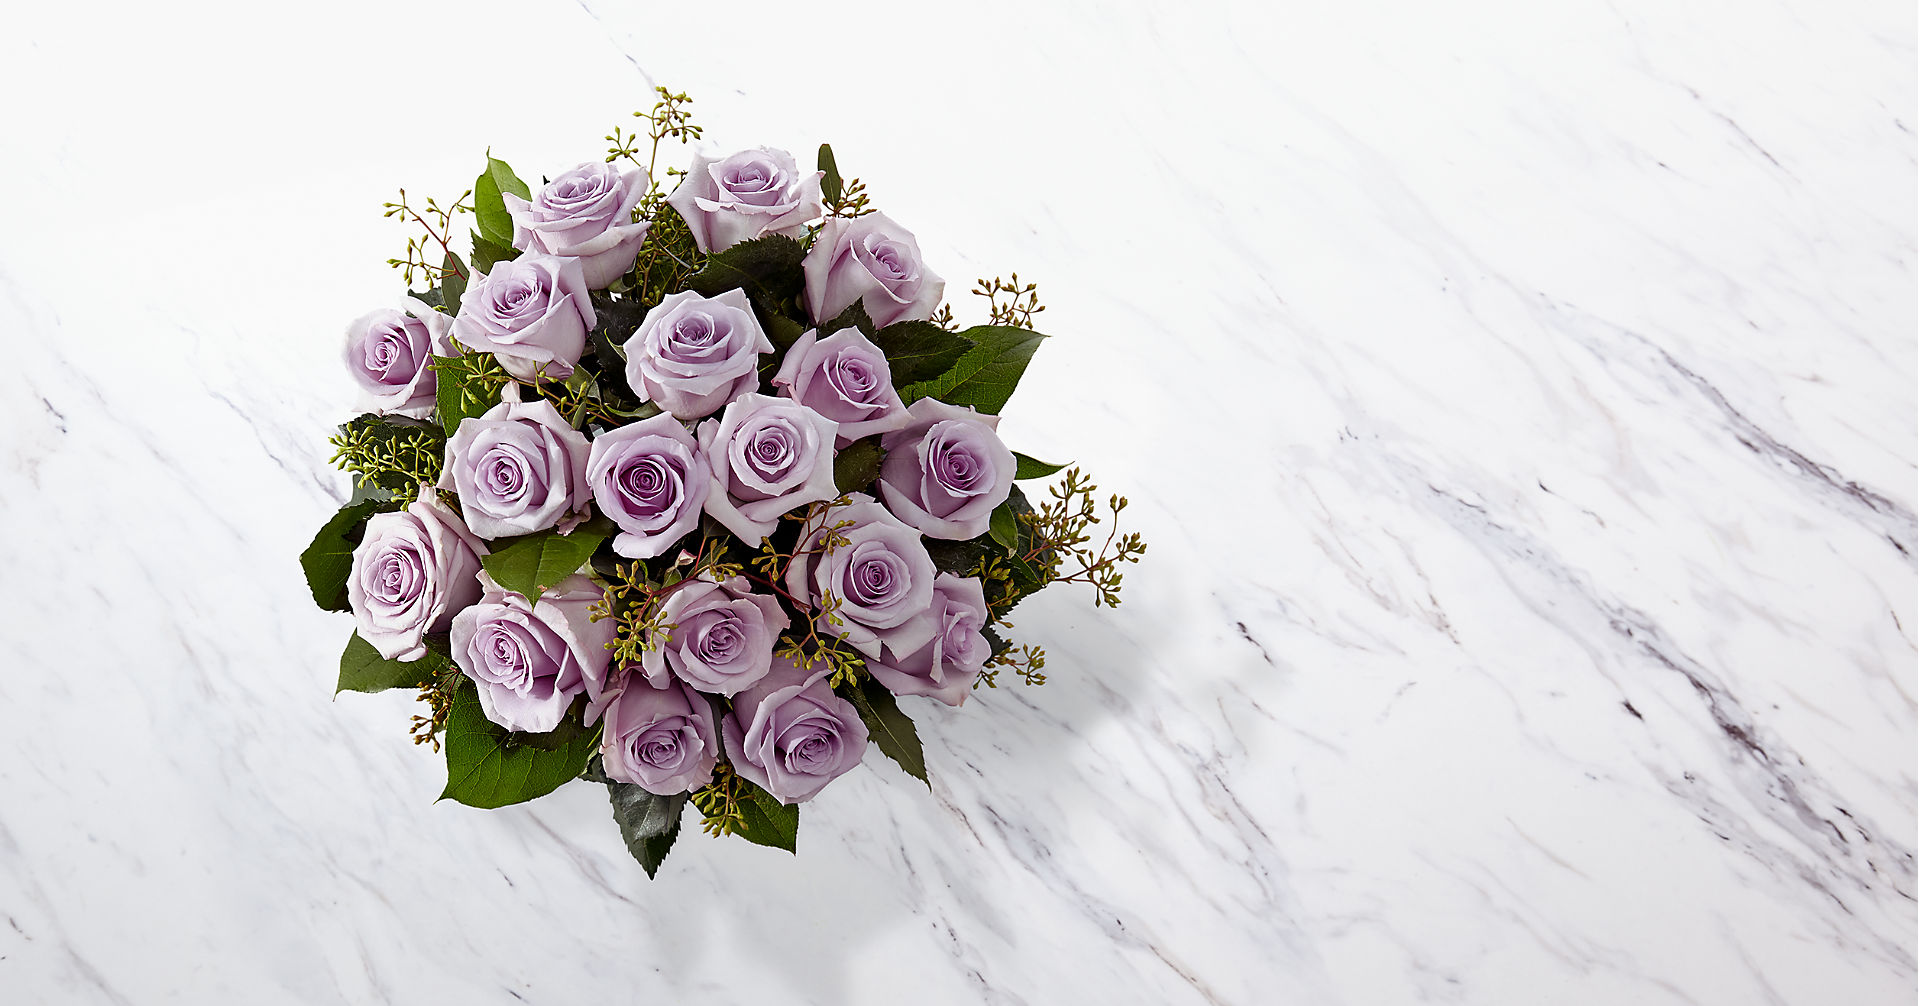 The Lavender Rose Bouquet - Image 2 Of 2